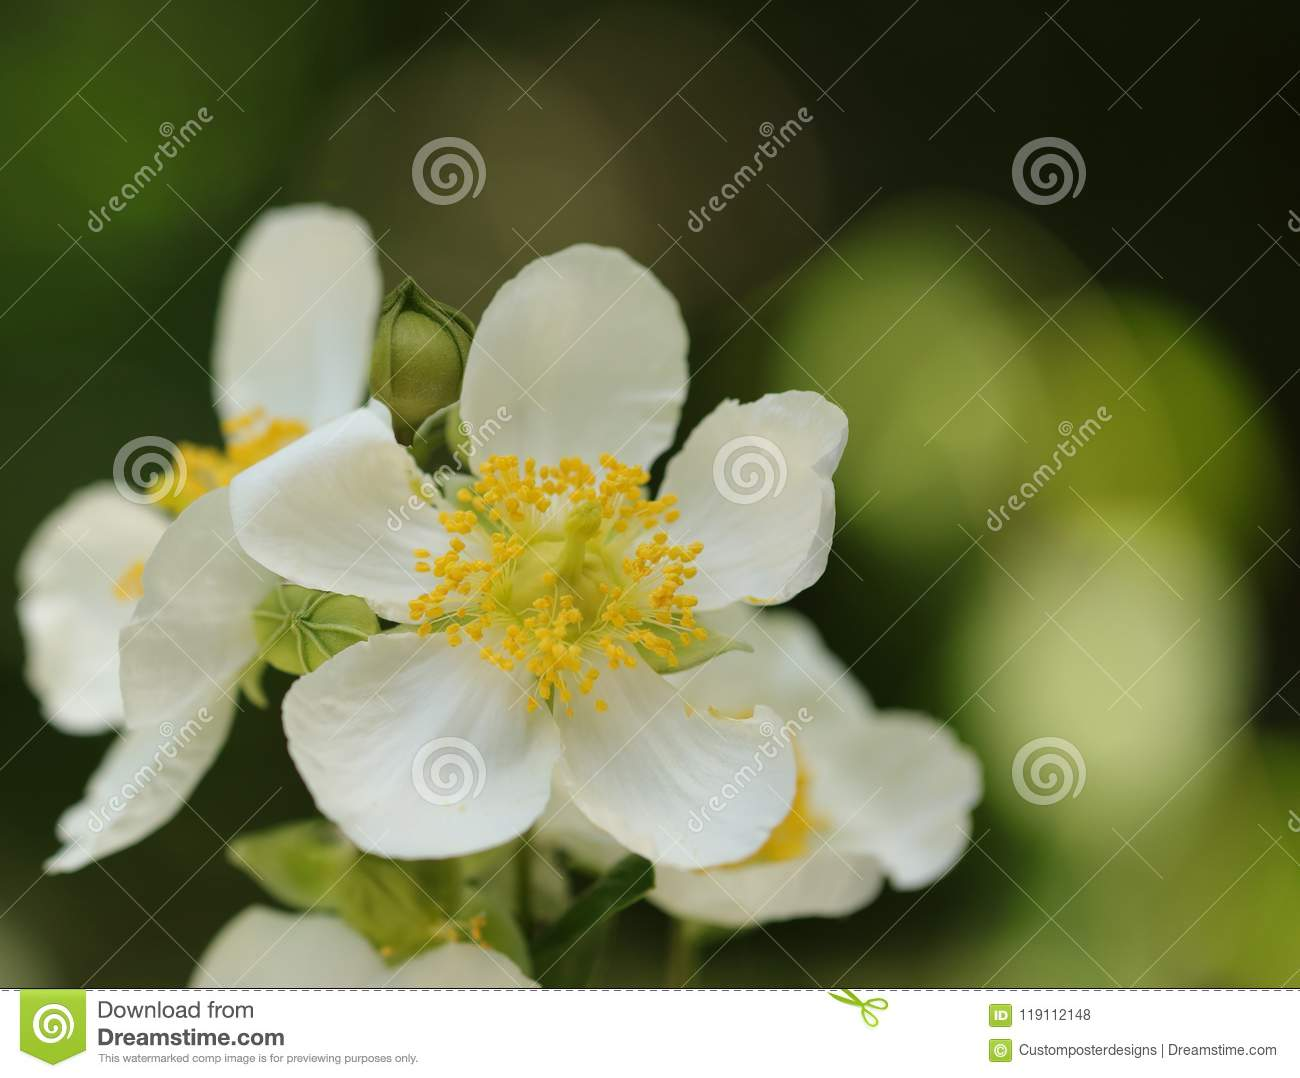 Download A White Daisy Flower On A Blurred Peach Background. Stock Photo - Image of close, floral: 119112148